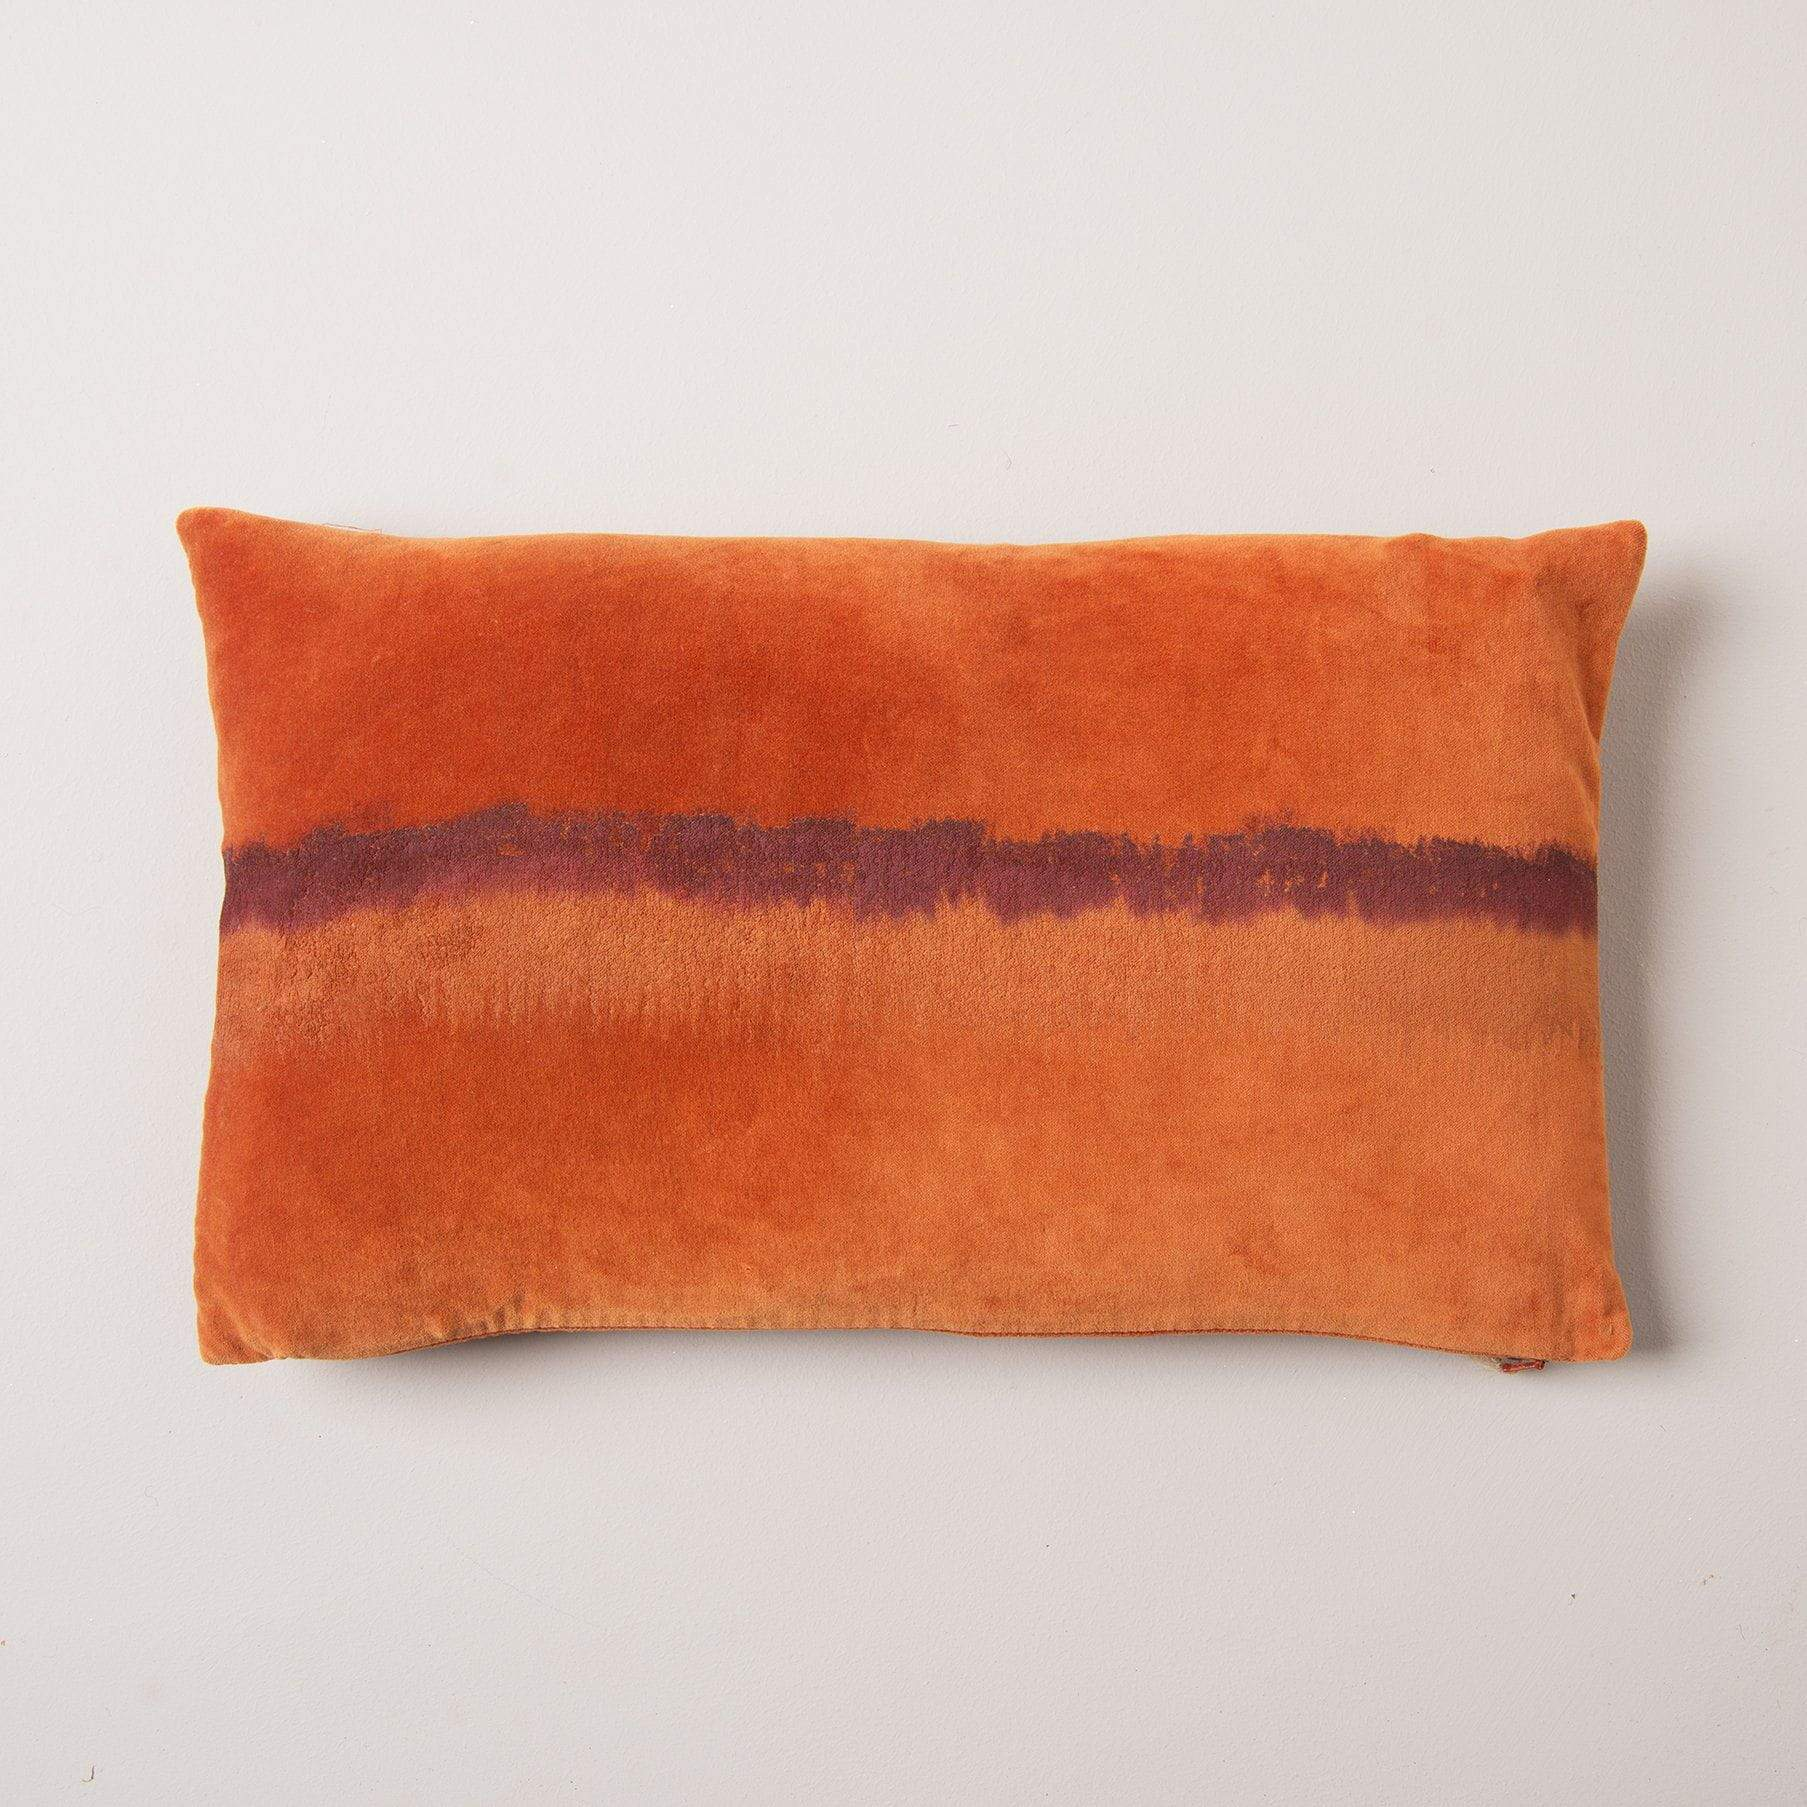 Ian Snow Ltd Maroon Stripe Hand Painted Orange Cotton Velvet Cushion